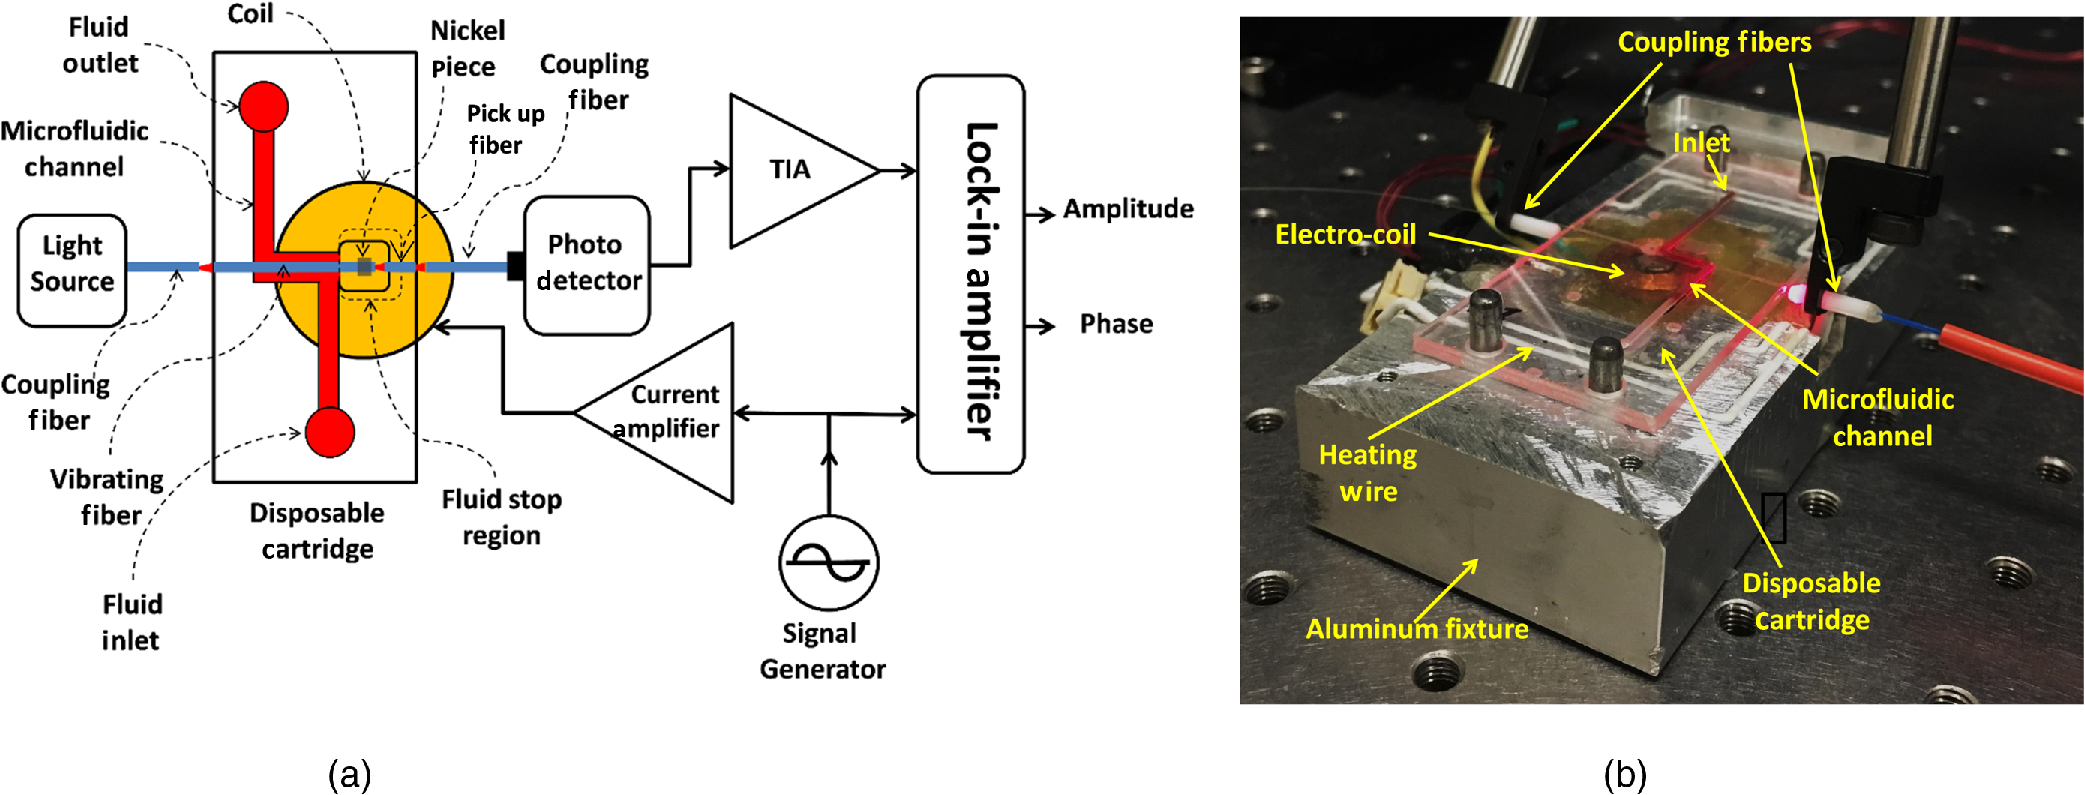 Coagulation Measurement From Whole Blood Using Vibrating Optical Fiber In A Disposable Cartridge